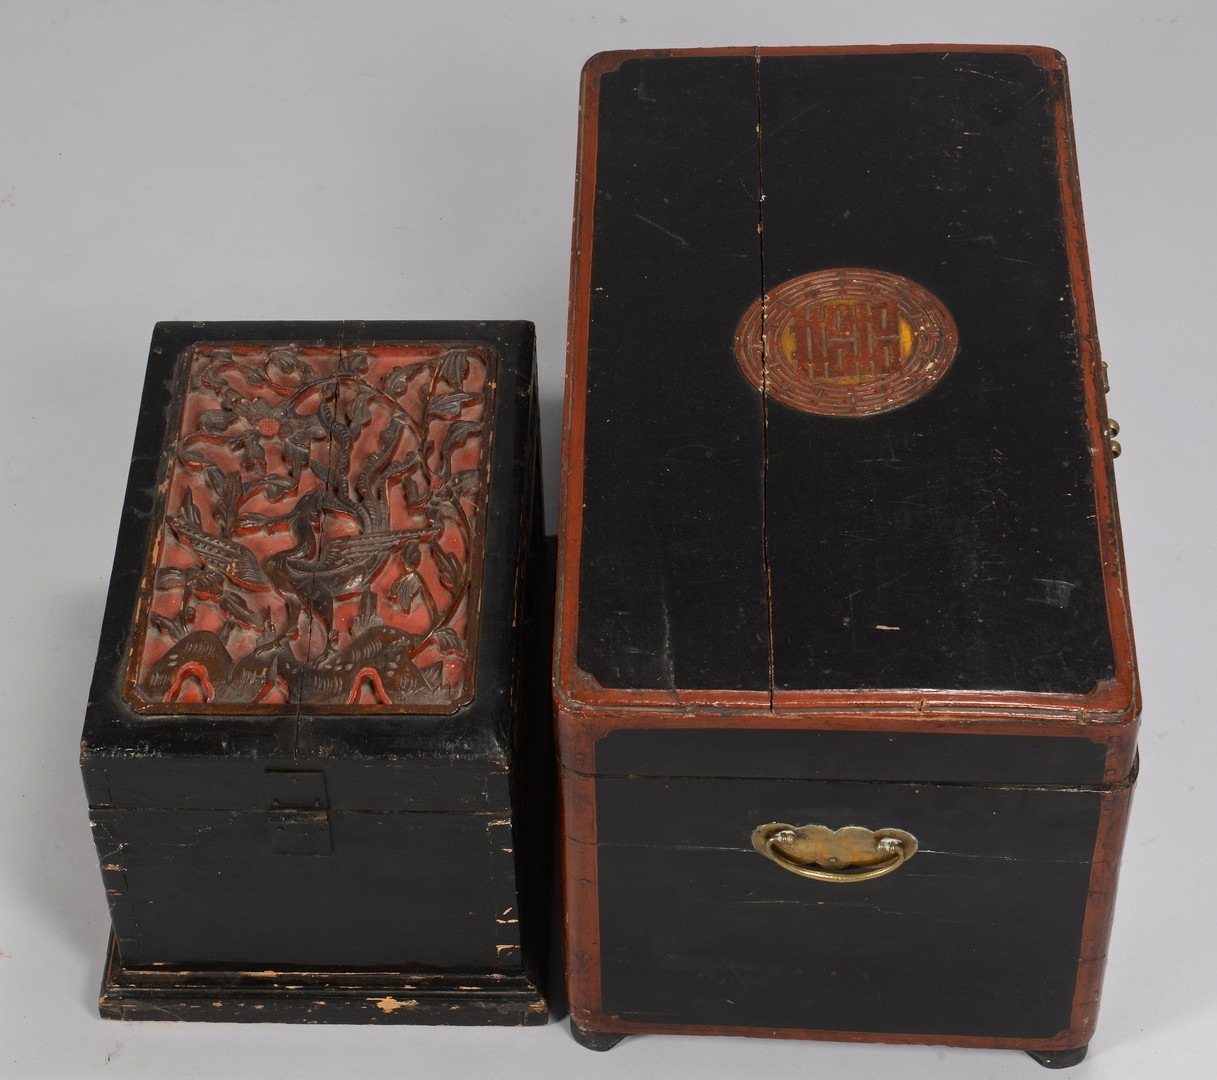 Lot 731: 2 Asian Lacquered Chests, 19th c.